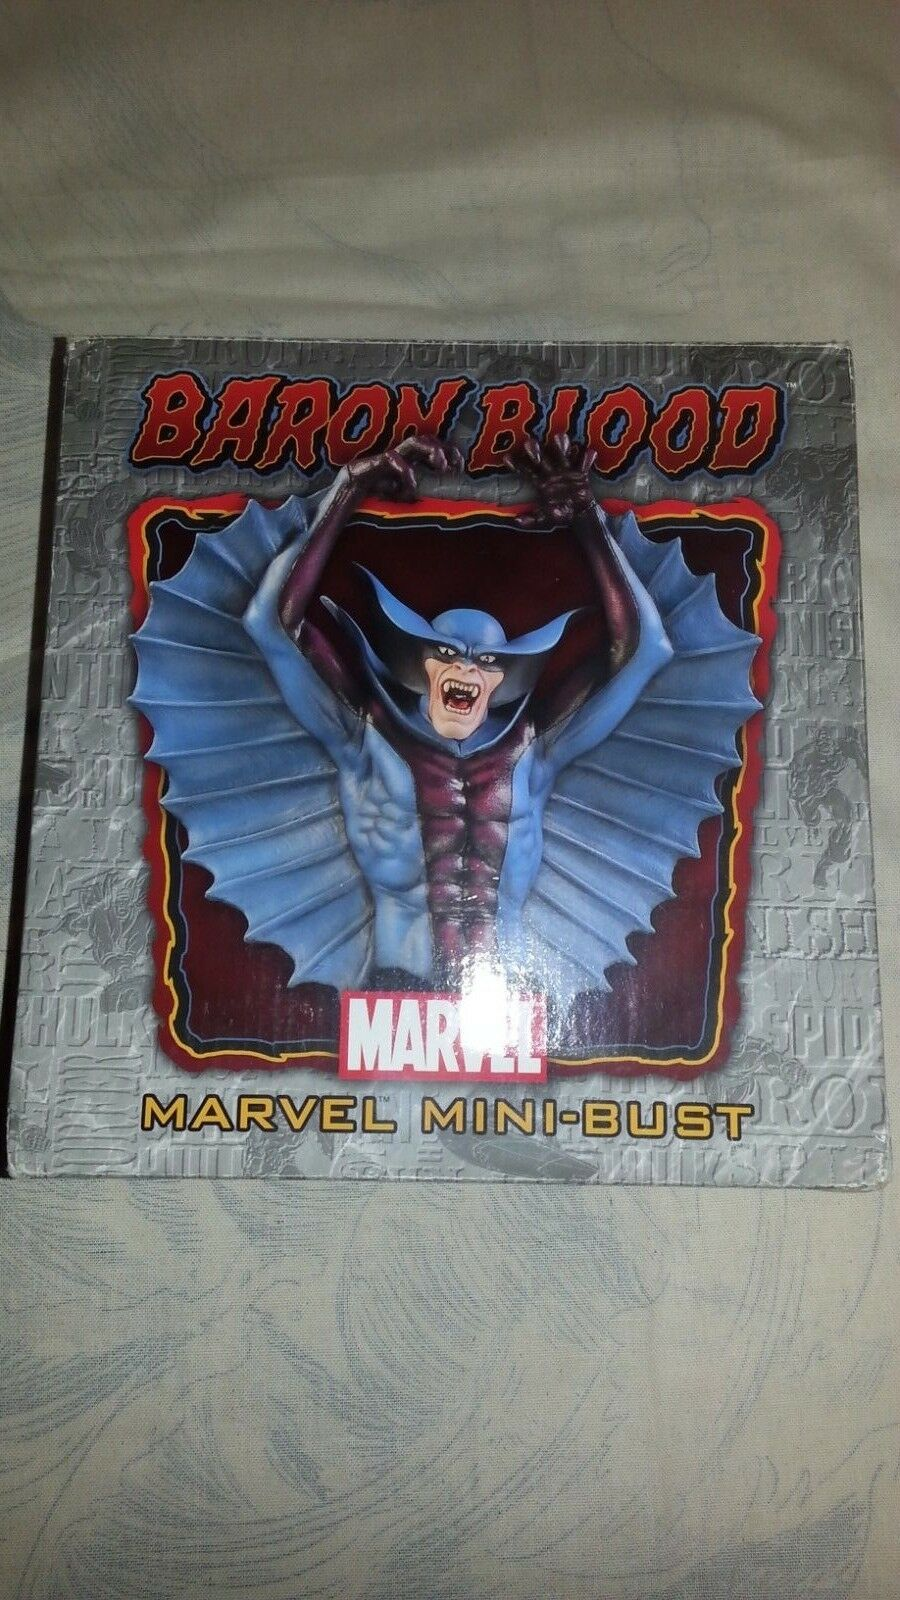 Baron Blaut marvel mini - pleite copia numerata 0373   1500 mark newman - af1